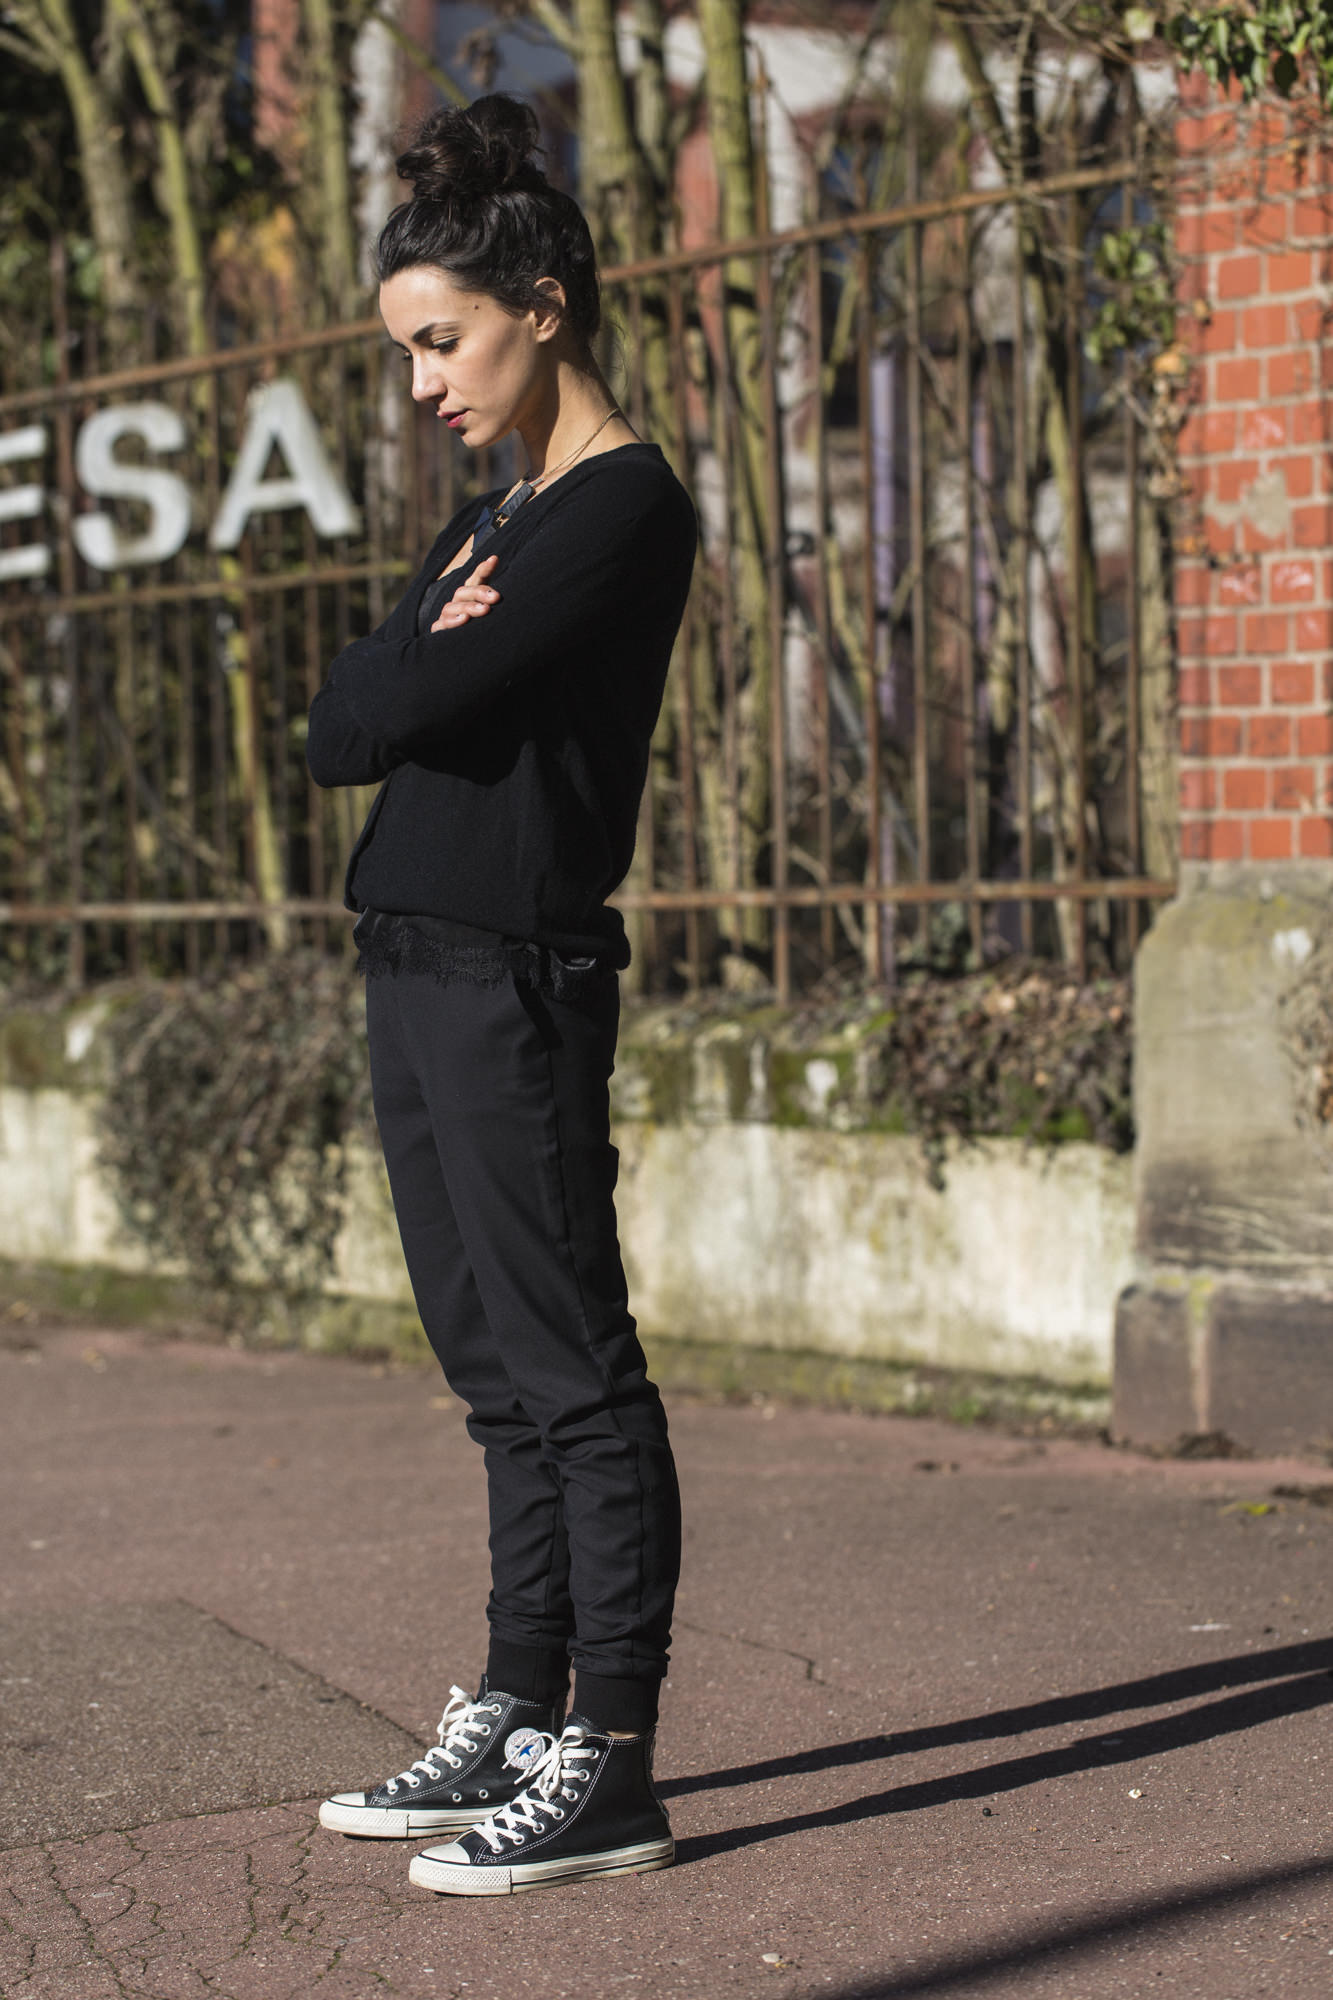 666c9e944ed4 Wear classic black converse like Coline by pairing them with slouchy tomboy  style trousers and a